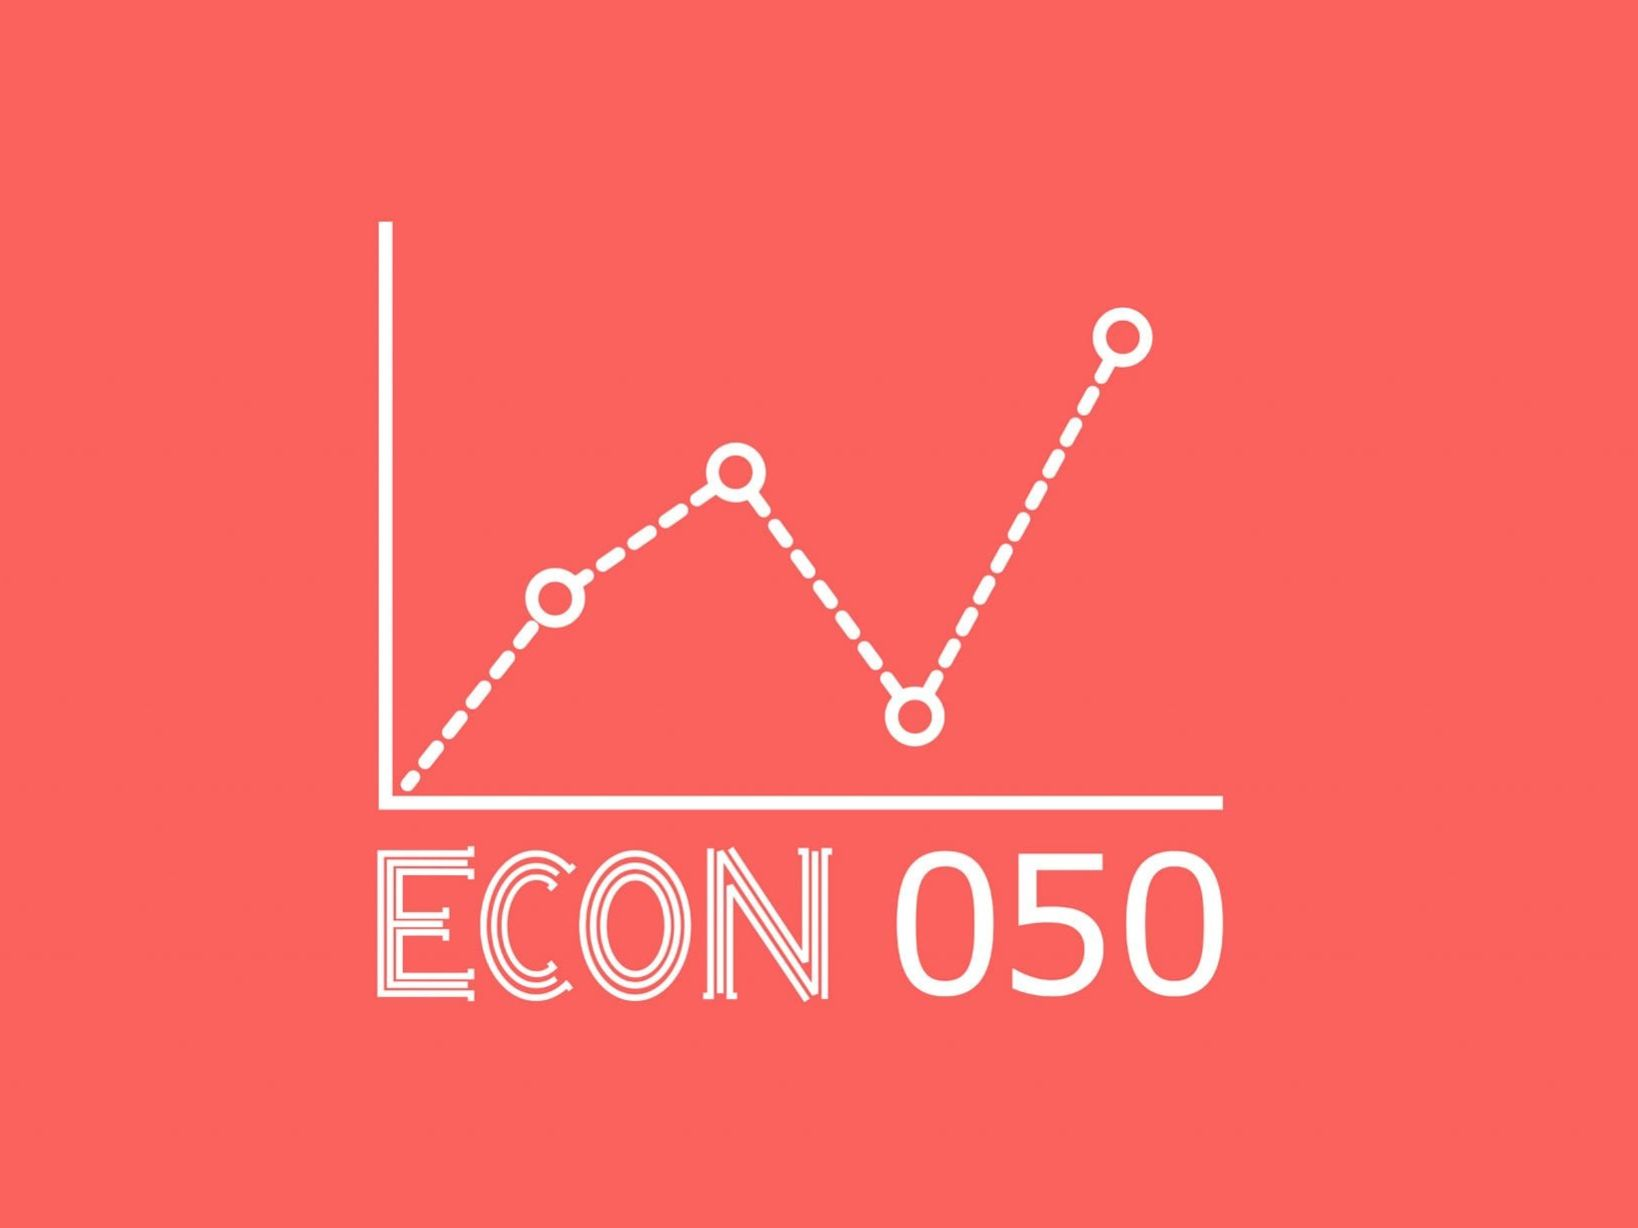 Podcast Econ 050 covers the economics and business news that matters to the Netherlands and the wider world.